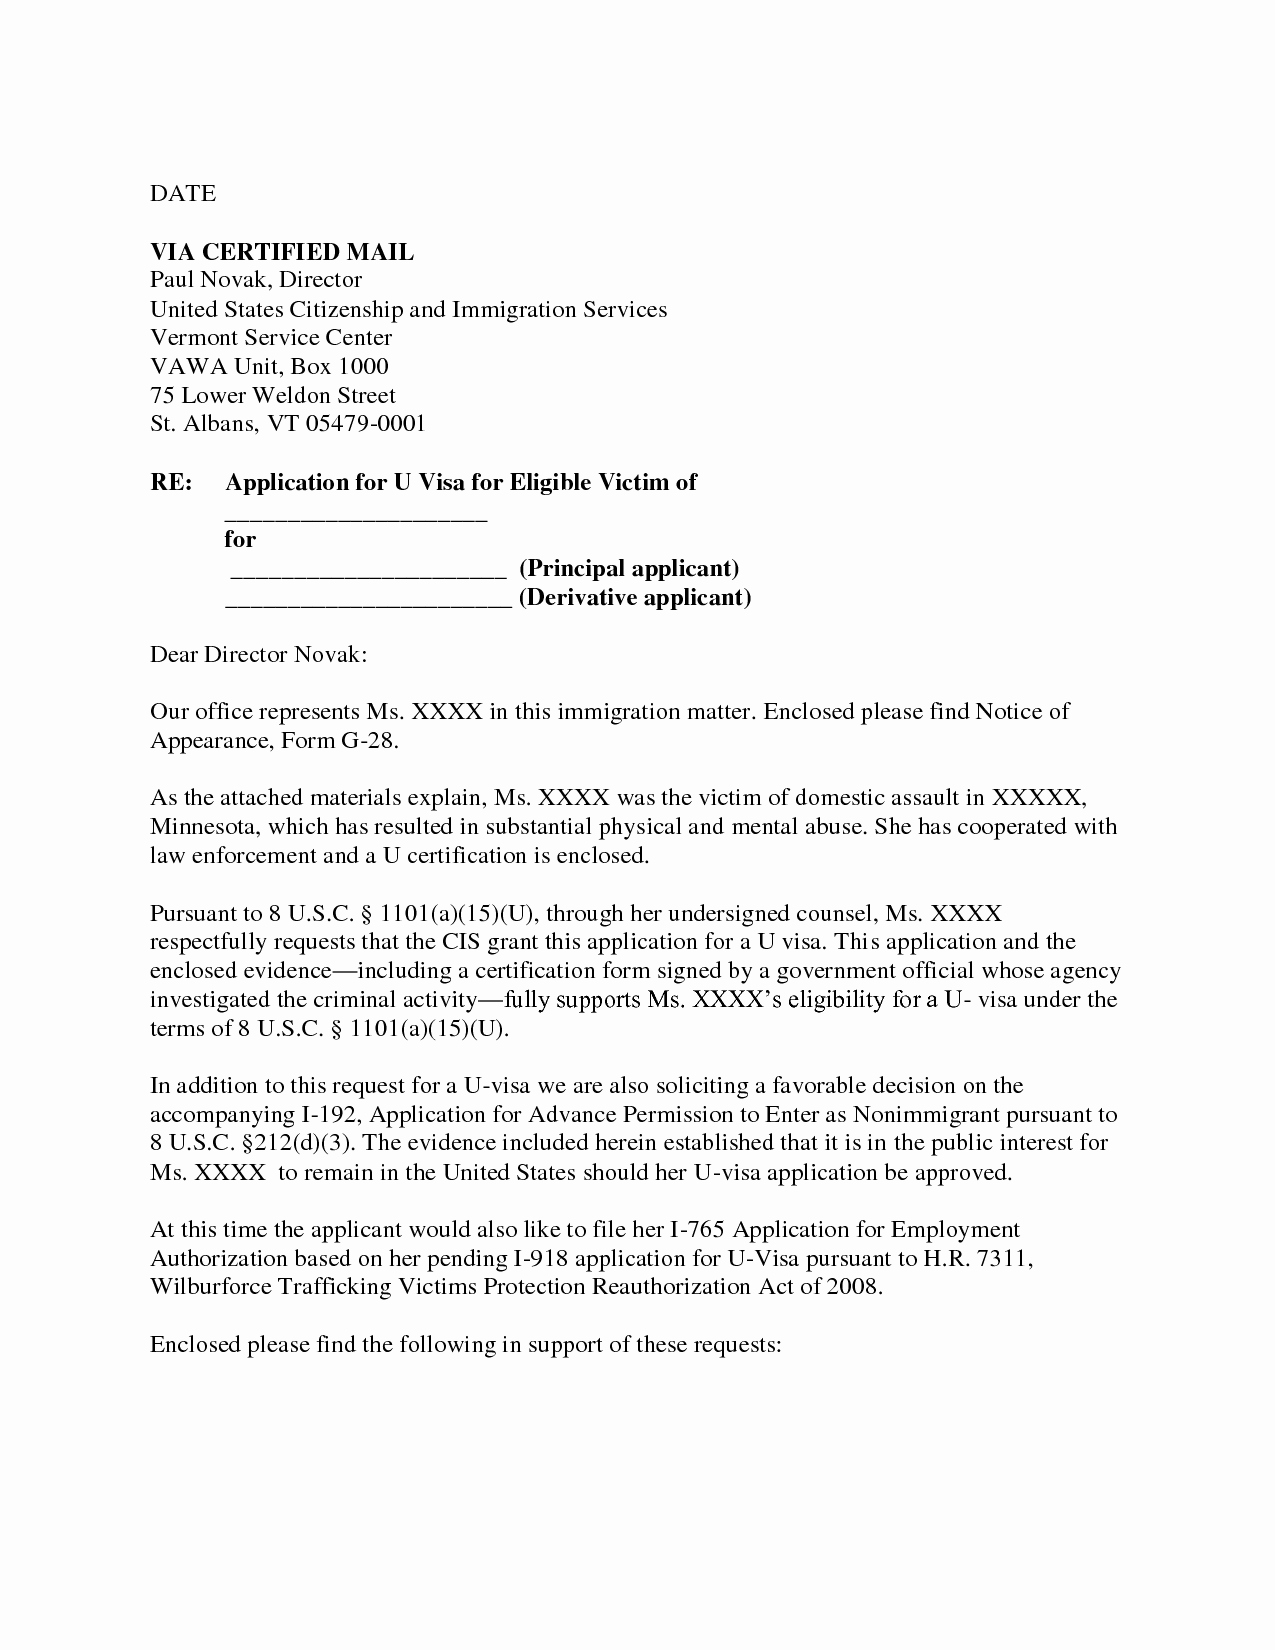 Immigration Pardon Letter Best Of Letter Example Waiver Letter for Immigration Sample